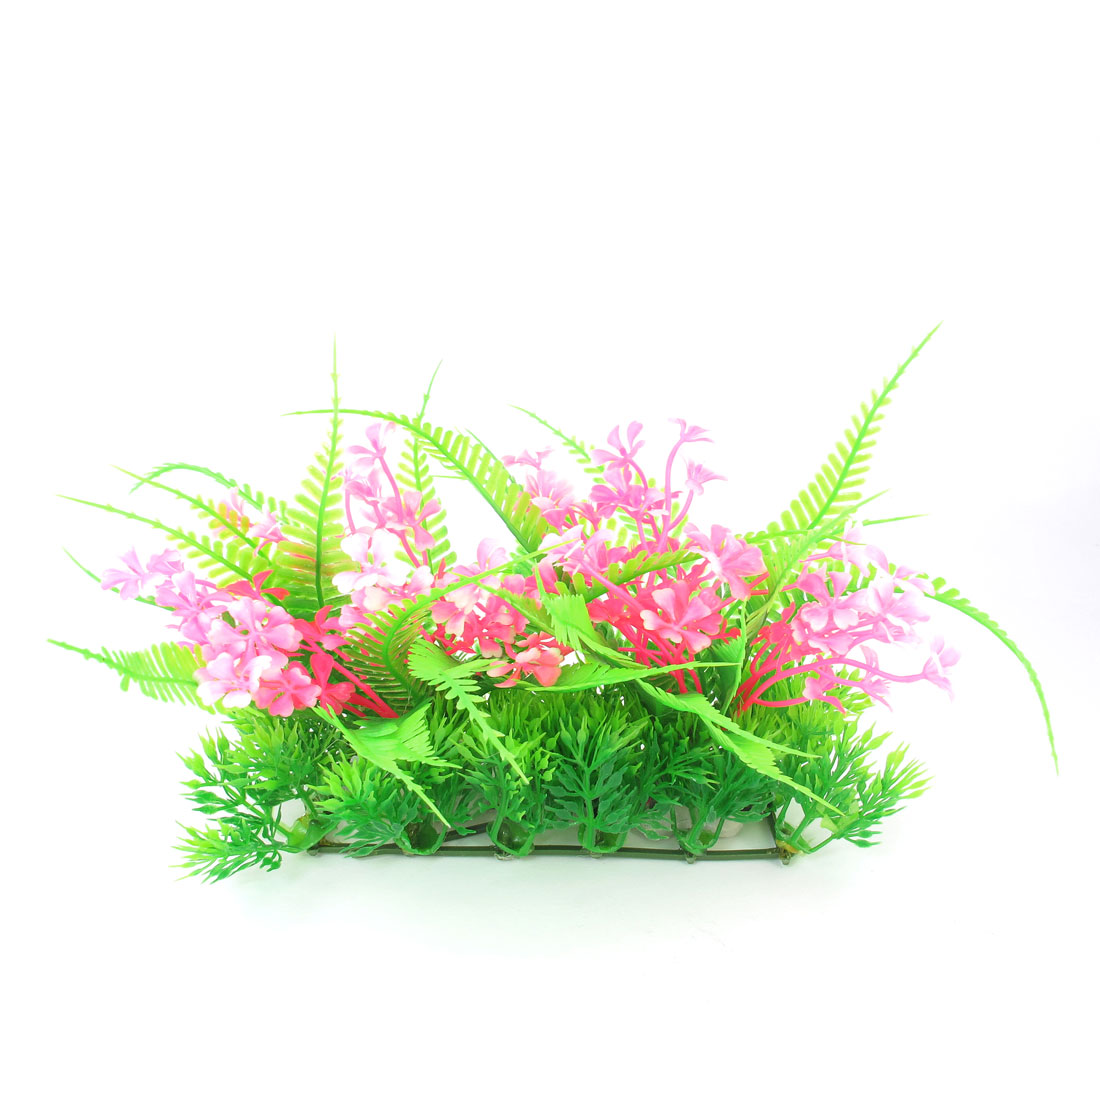 Fish Tank Aquarium Pink Floral Green Plastic Leaves Simulation Plants 6.3""